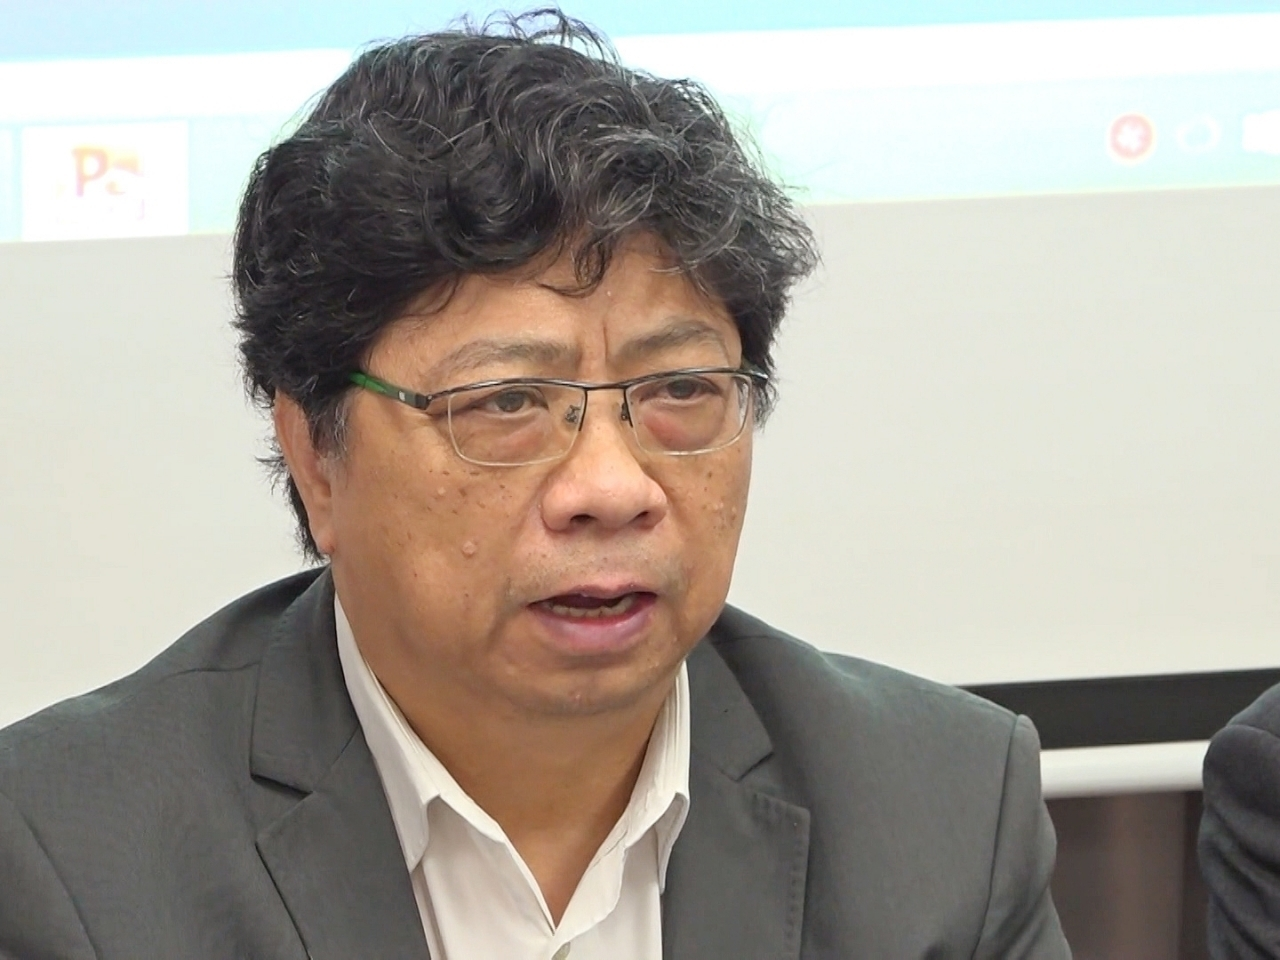 HKJA leader Chris Yeung says the decision to drop an RTHK production team will cause anxiety among staff and damage their trust in the bosses. File photo: RTHK